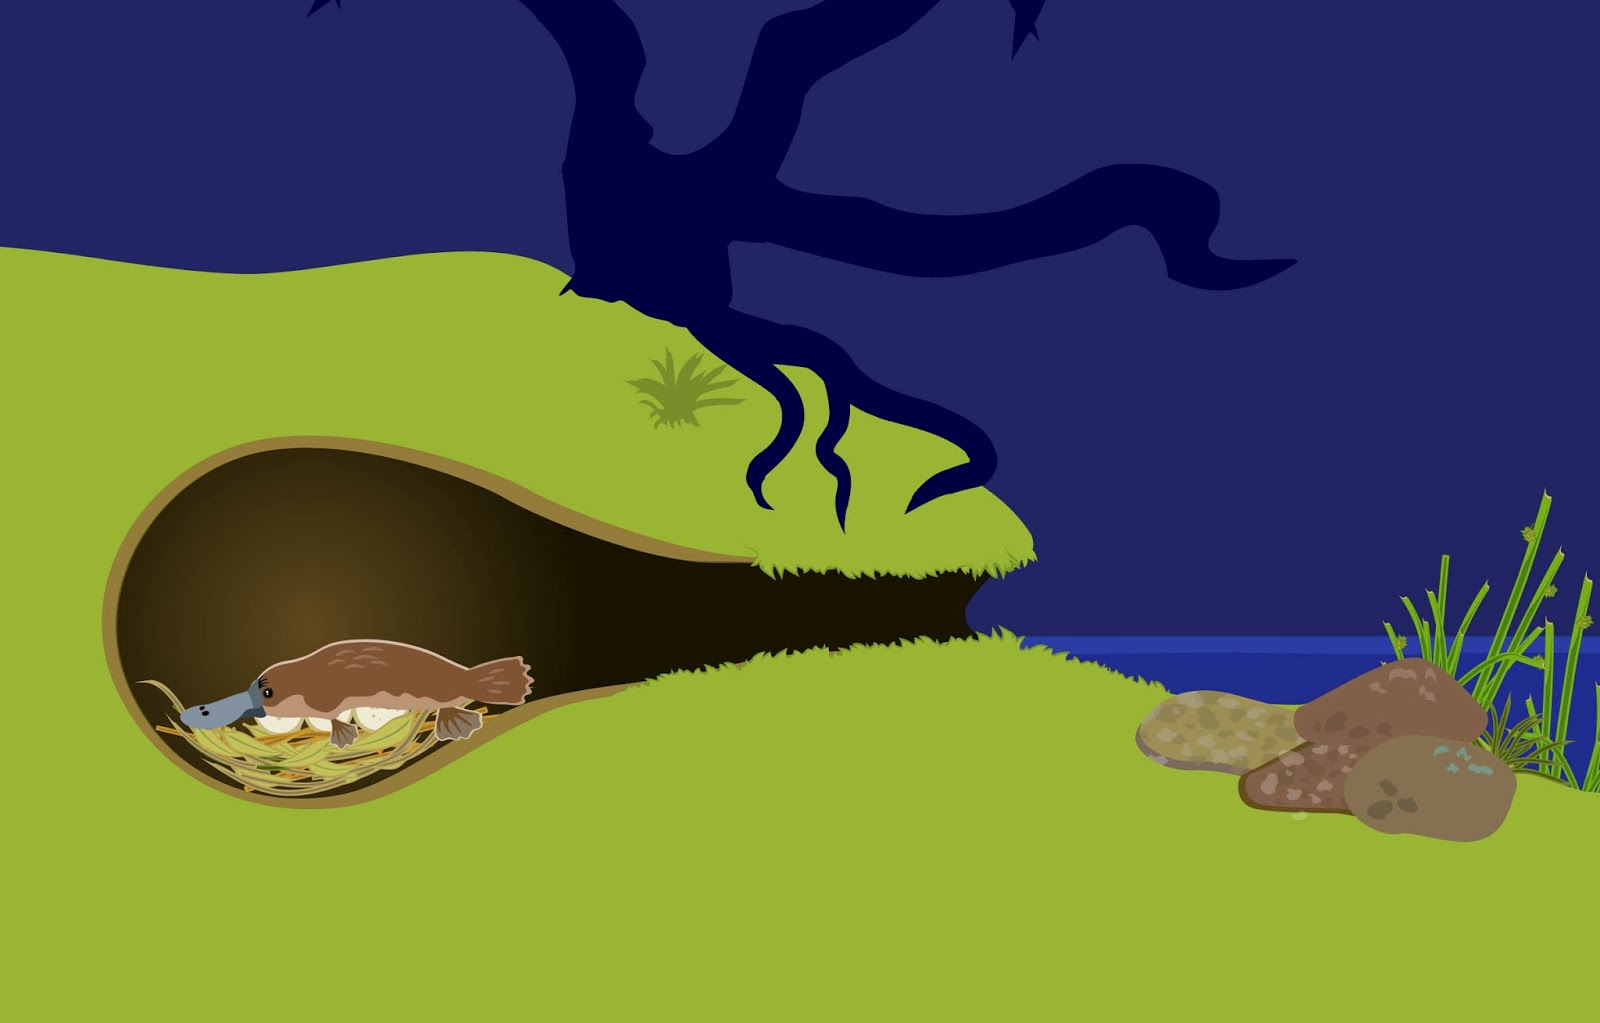 Platypus Facts For Kids  Top 10 Interesting Facts about